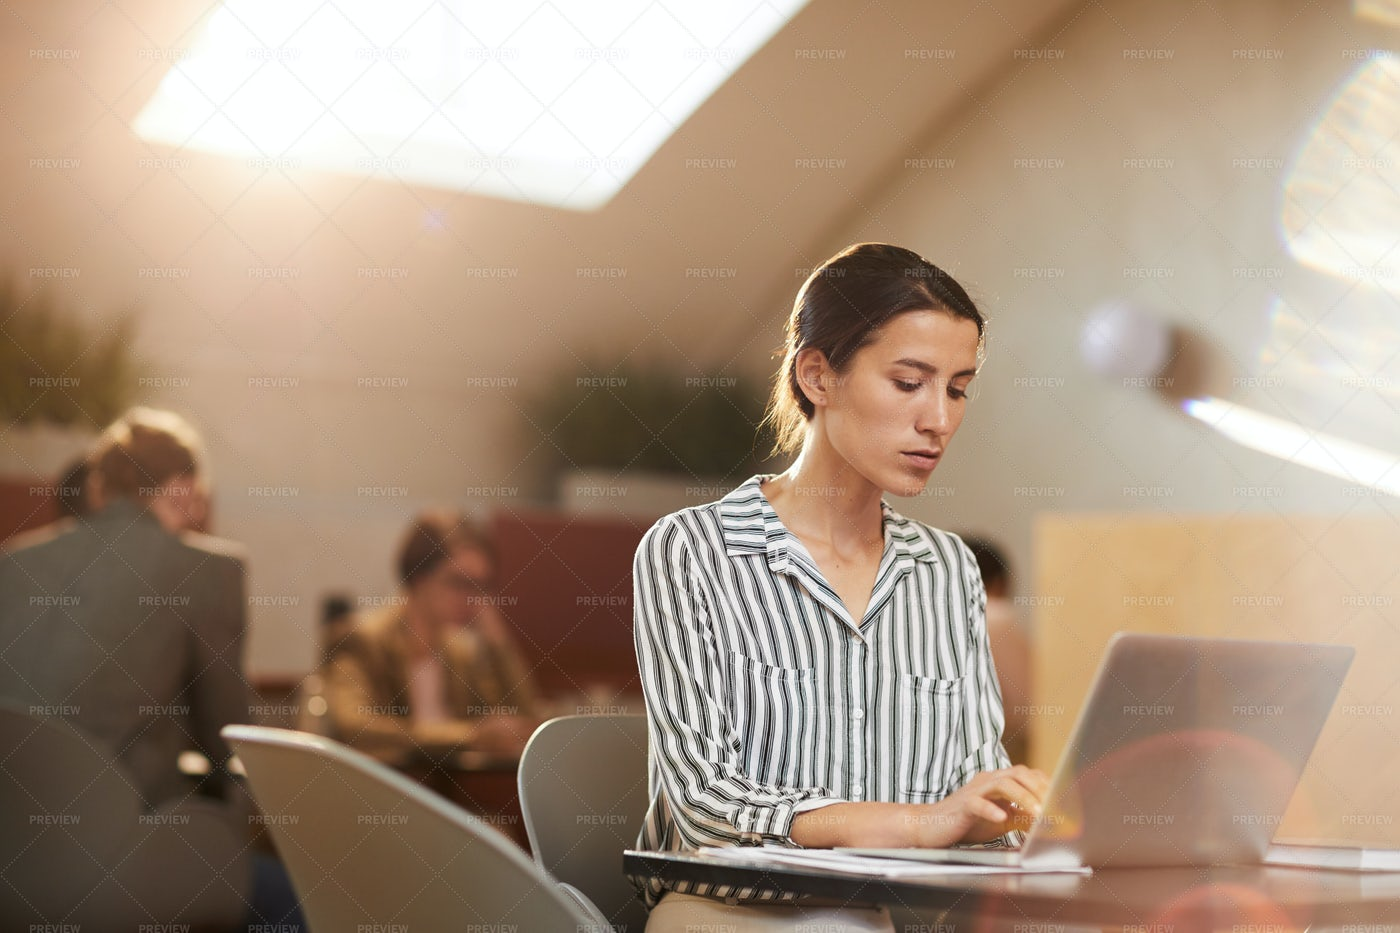 Woman Using Laptop In Cafe: Stock Photos